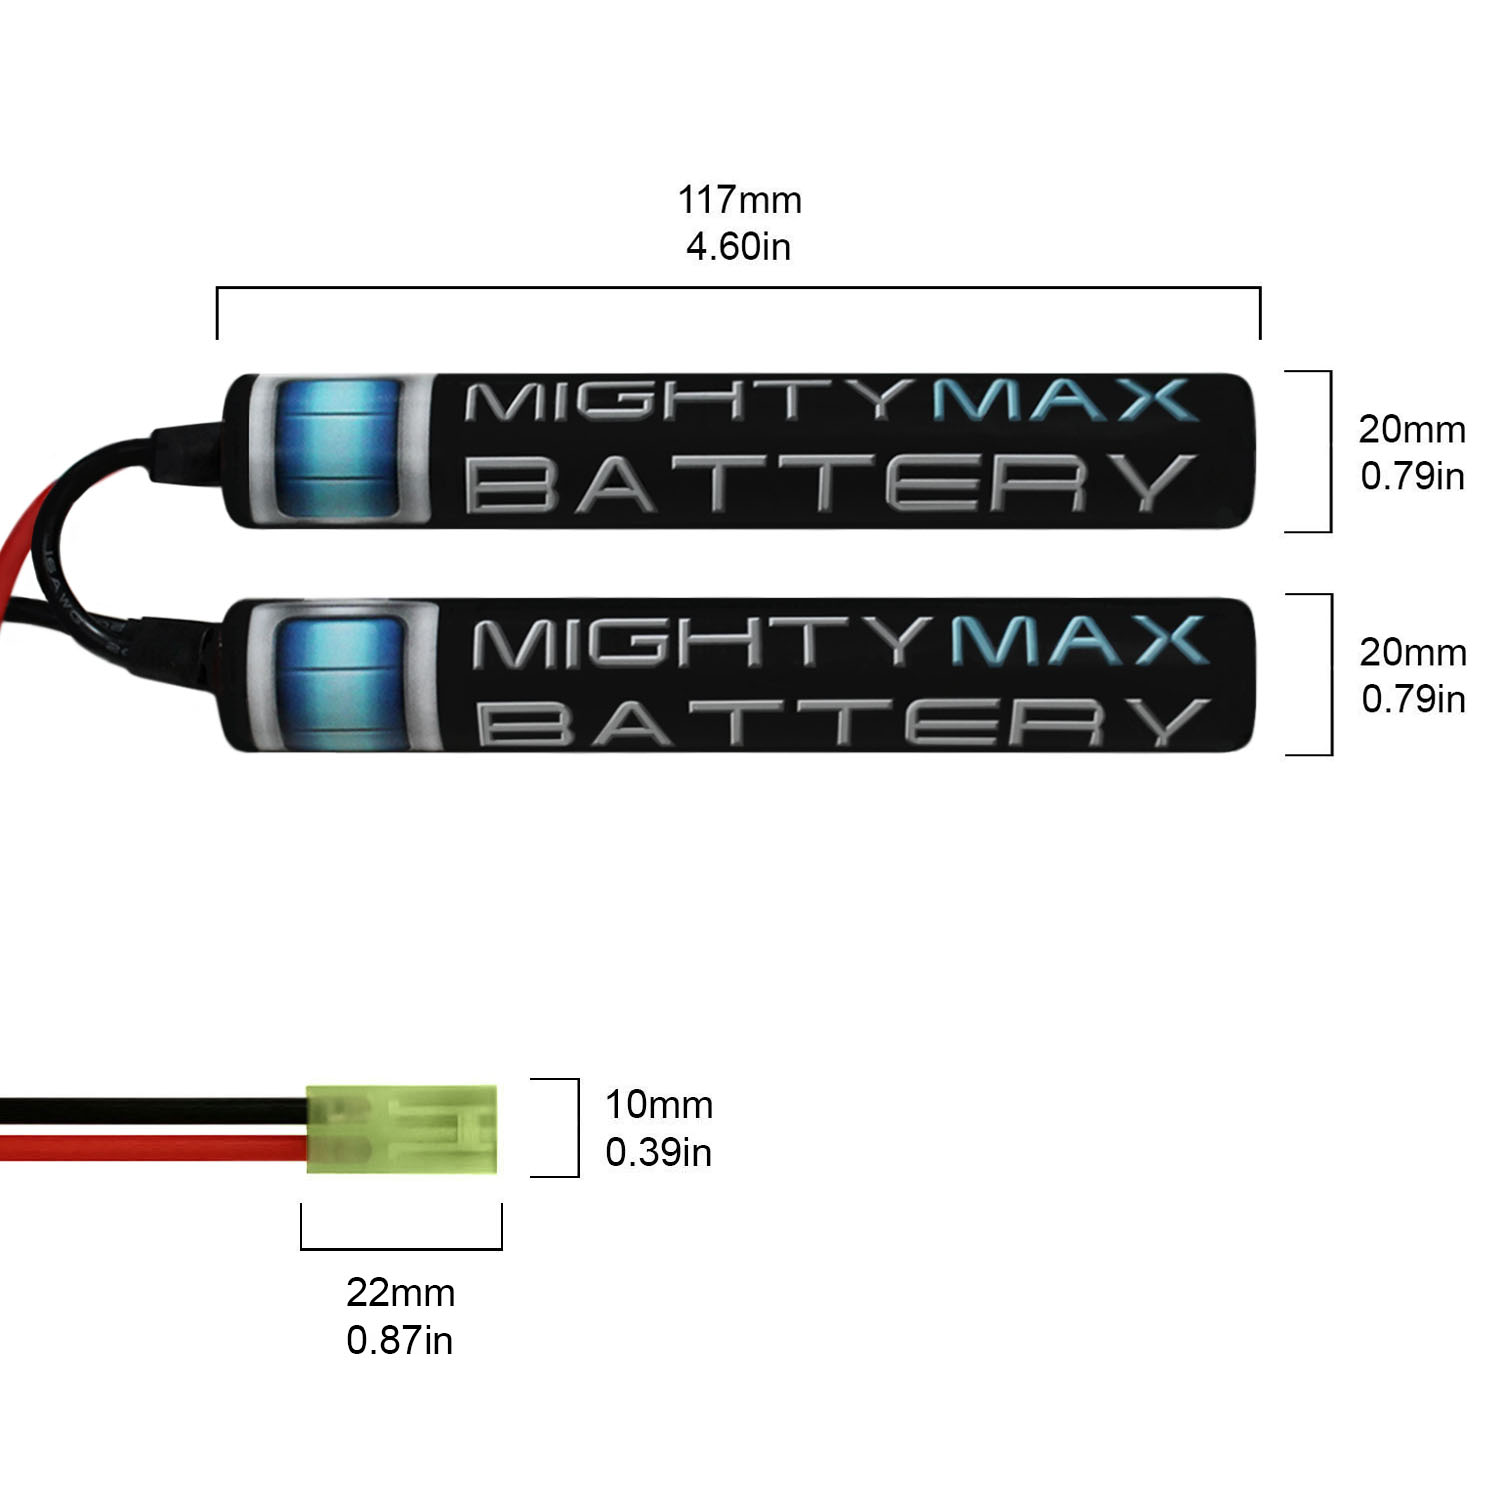 9.6V 1600mAh Butterfly Battery Pack - 1